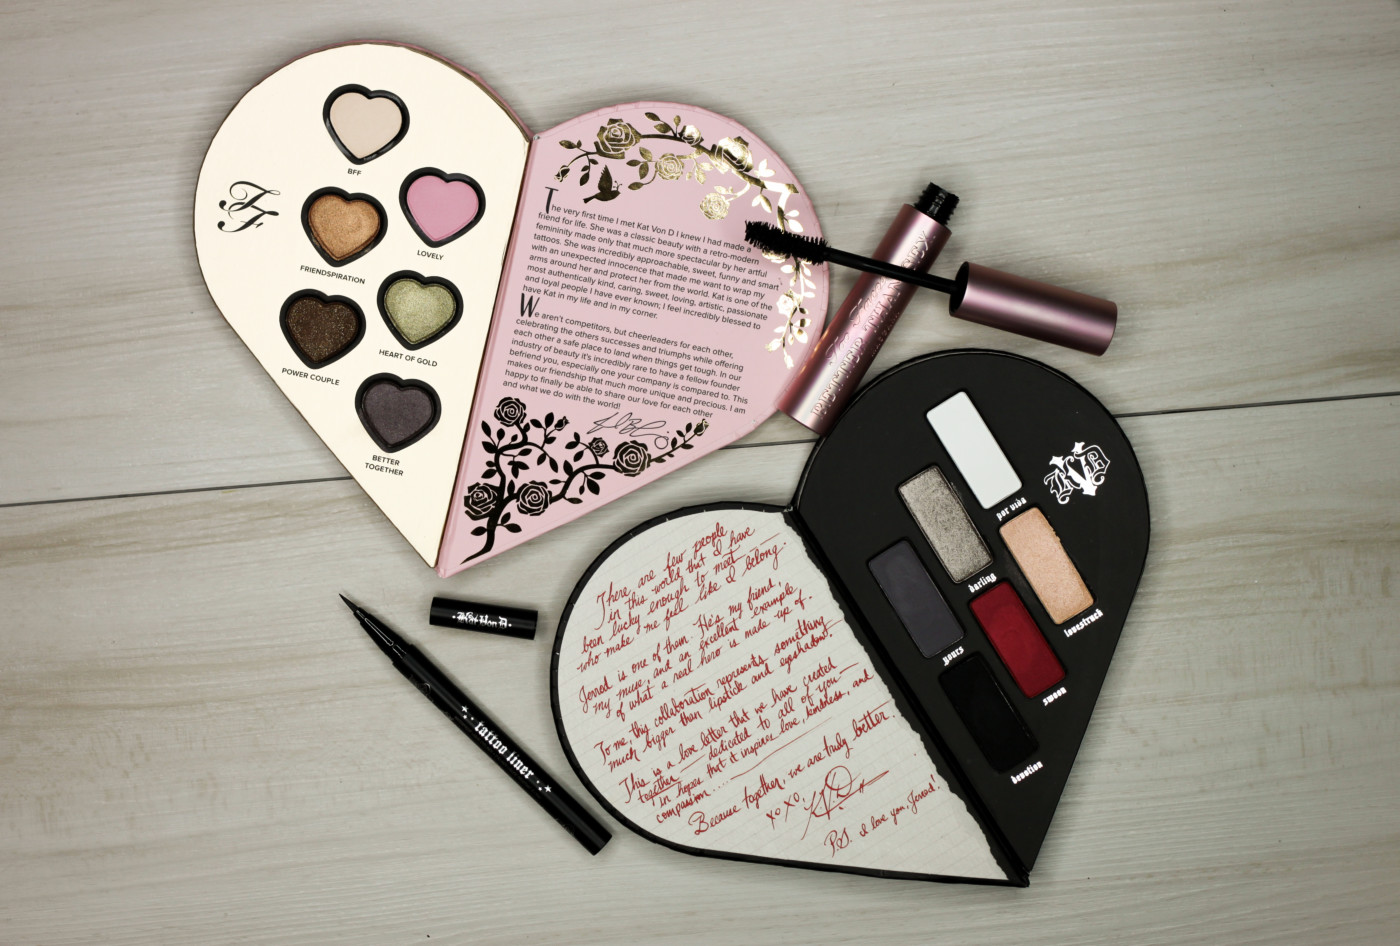 Too Faced x Kat Von D Better Together Collection (Review + Swatches)